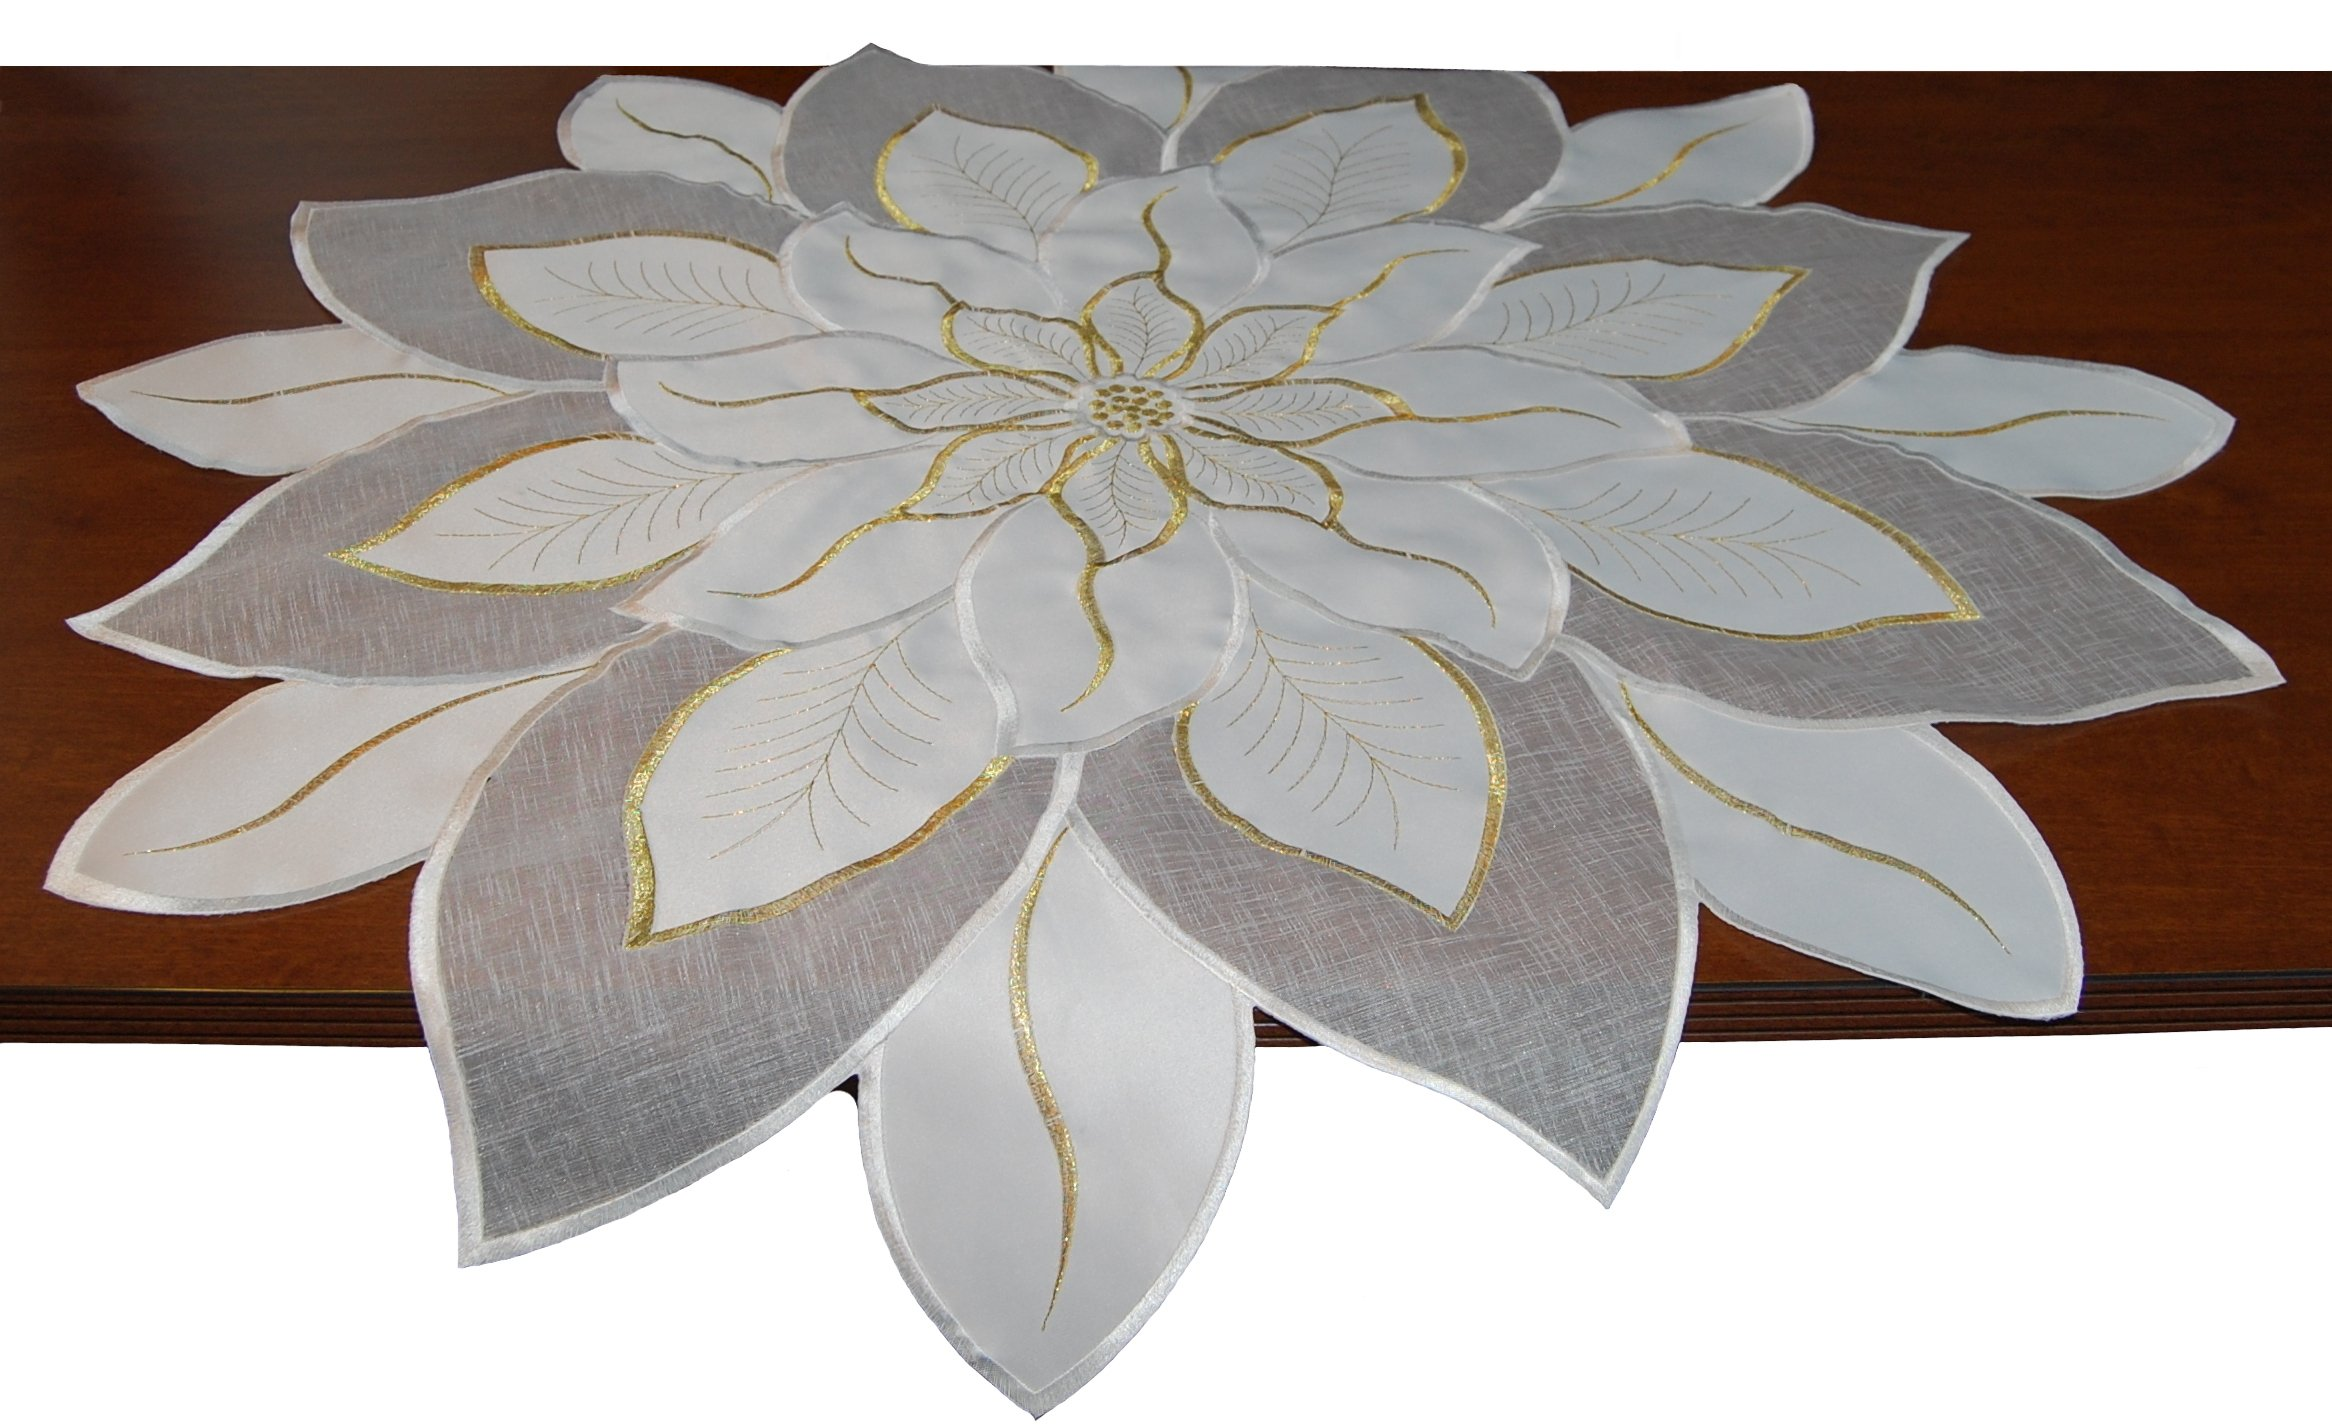 silk flower arrangements ecosol designs embroidered holiday table topper (white poinsettia)